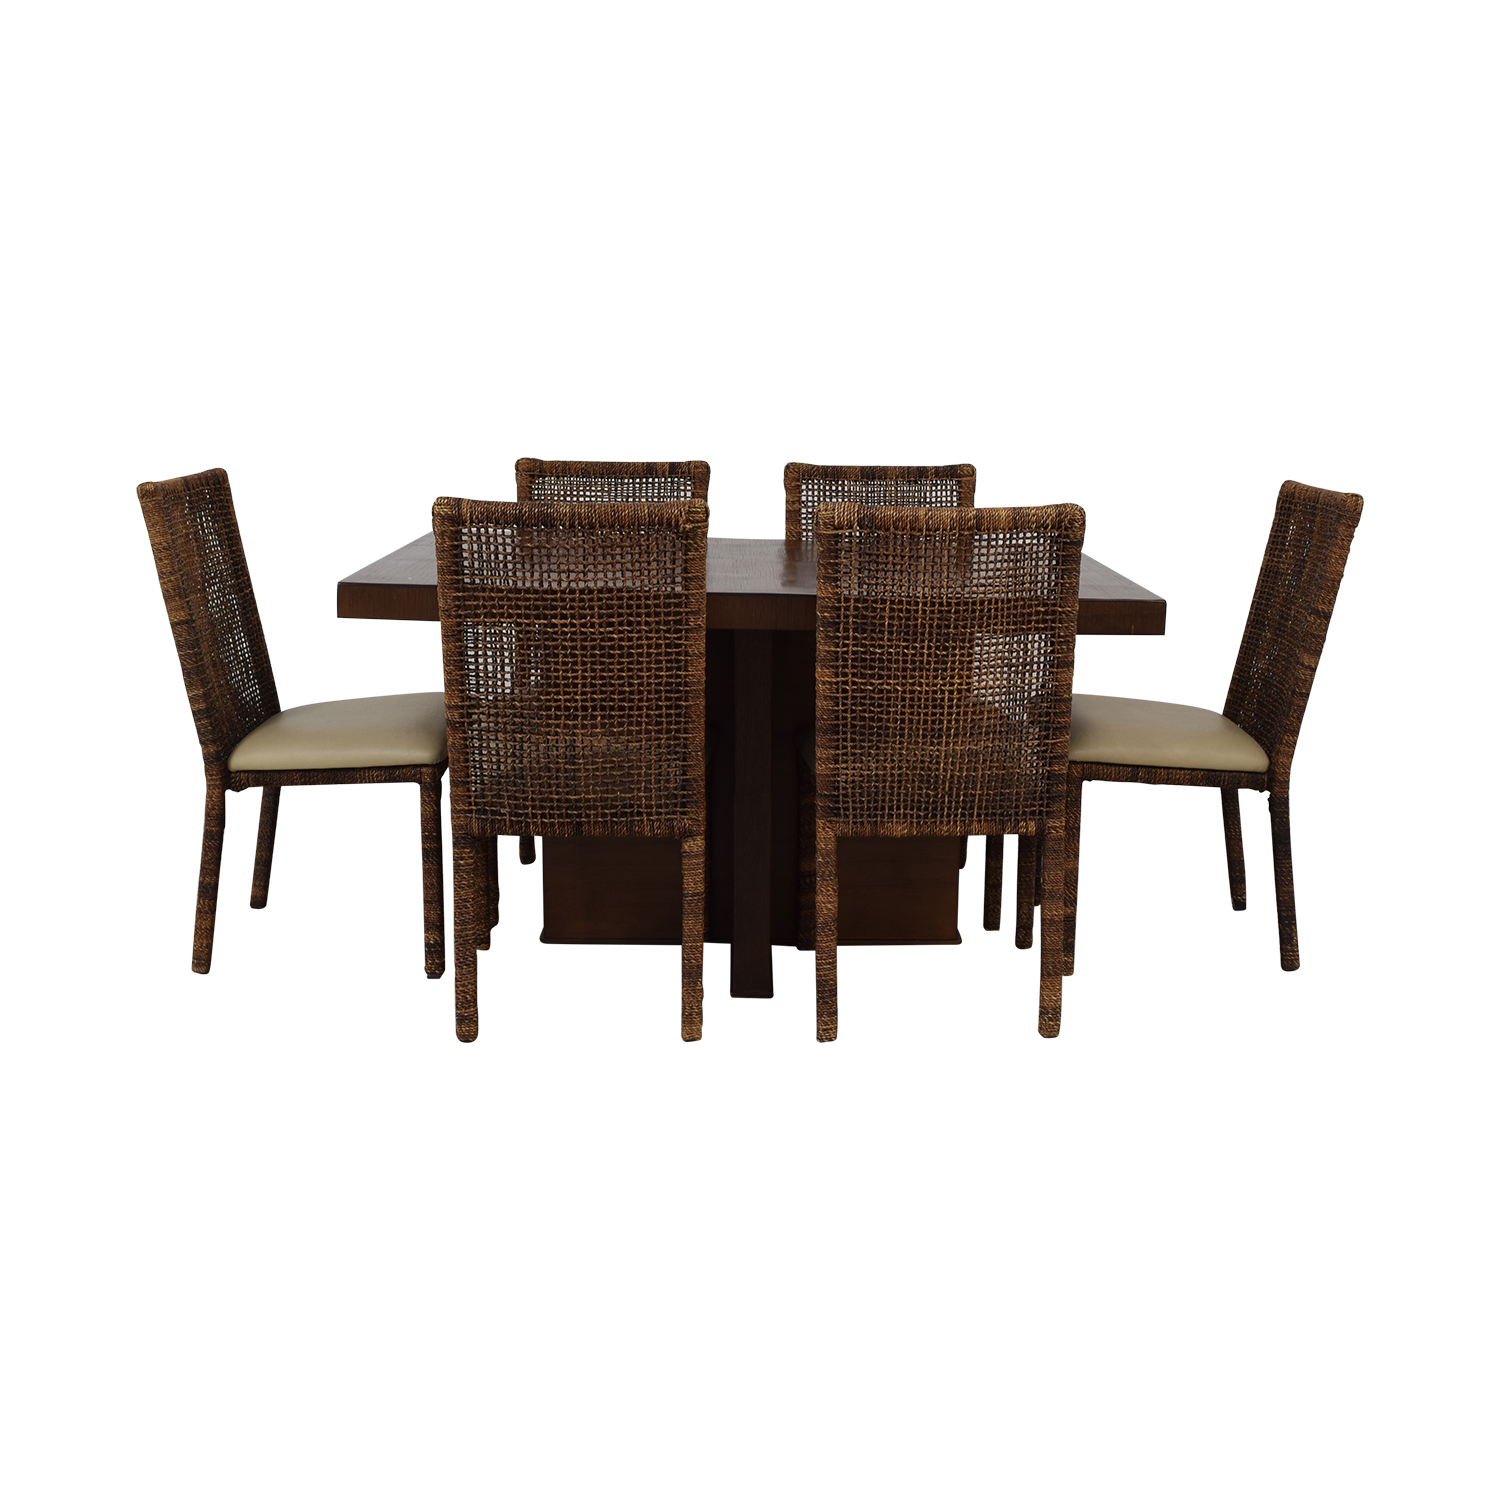 Upholstered Wicker Dining Chairs With Extendable Table nyc